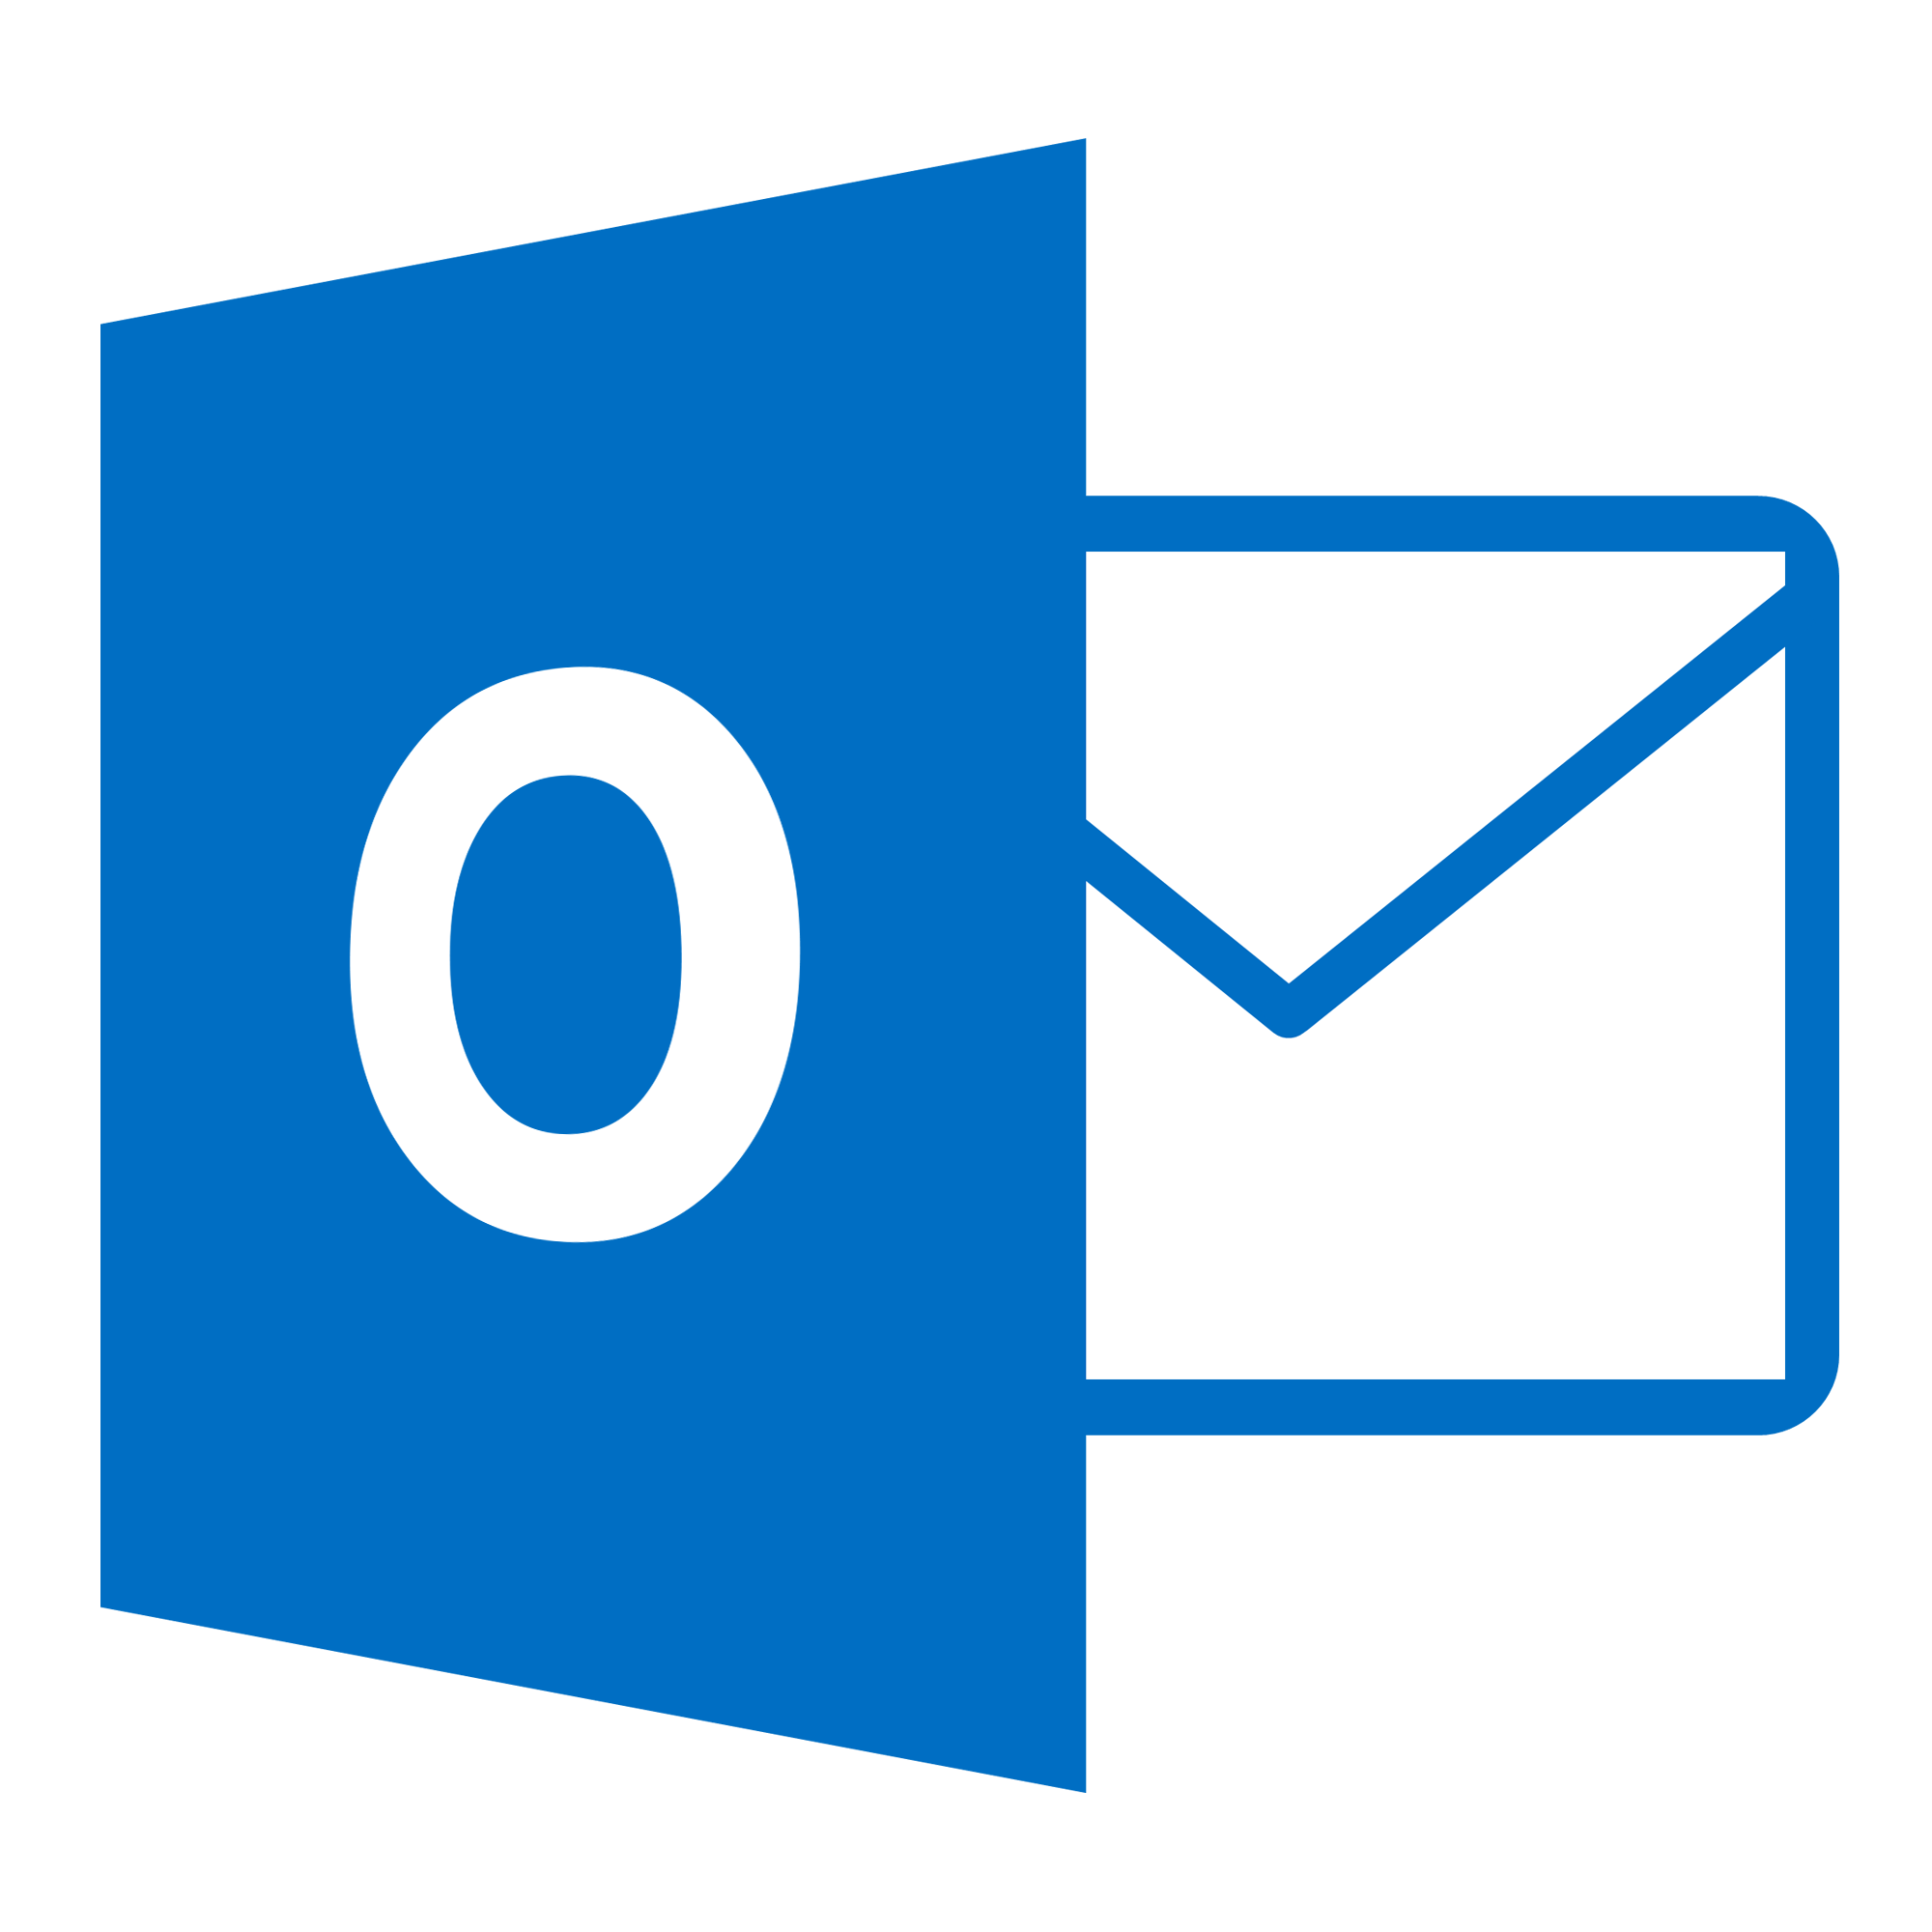 19 Outlook Envelope Icon Images